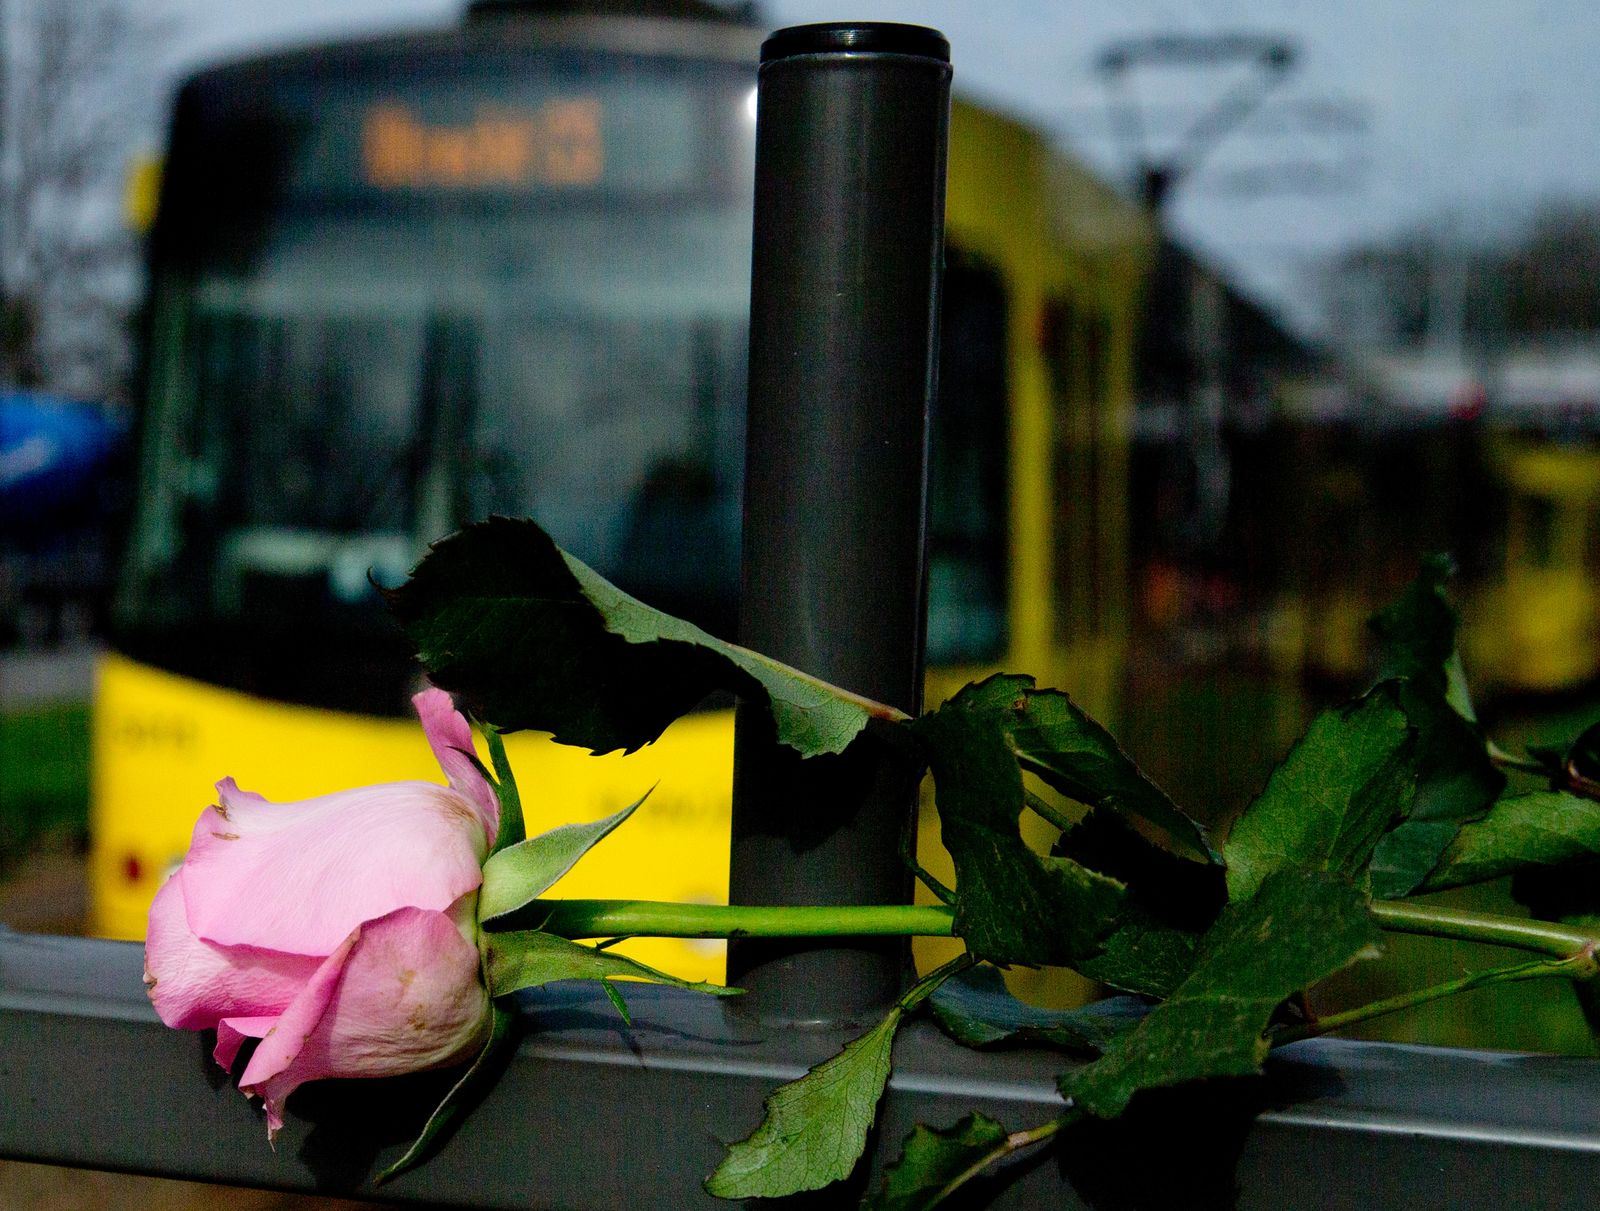 A tram passes a rose at the site of a shooting incident in a tram in Utrecht, Netherlands, Tuesday, March 19, 2019.{ } (AP Photo/Peter Dejong)